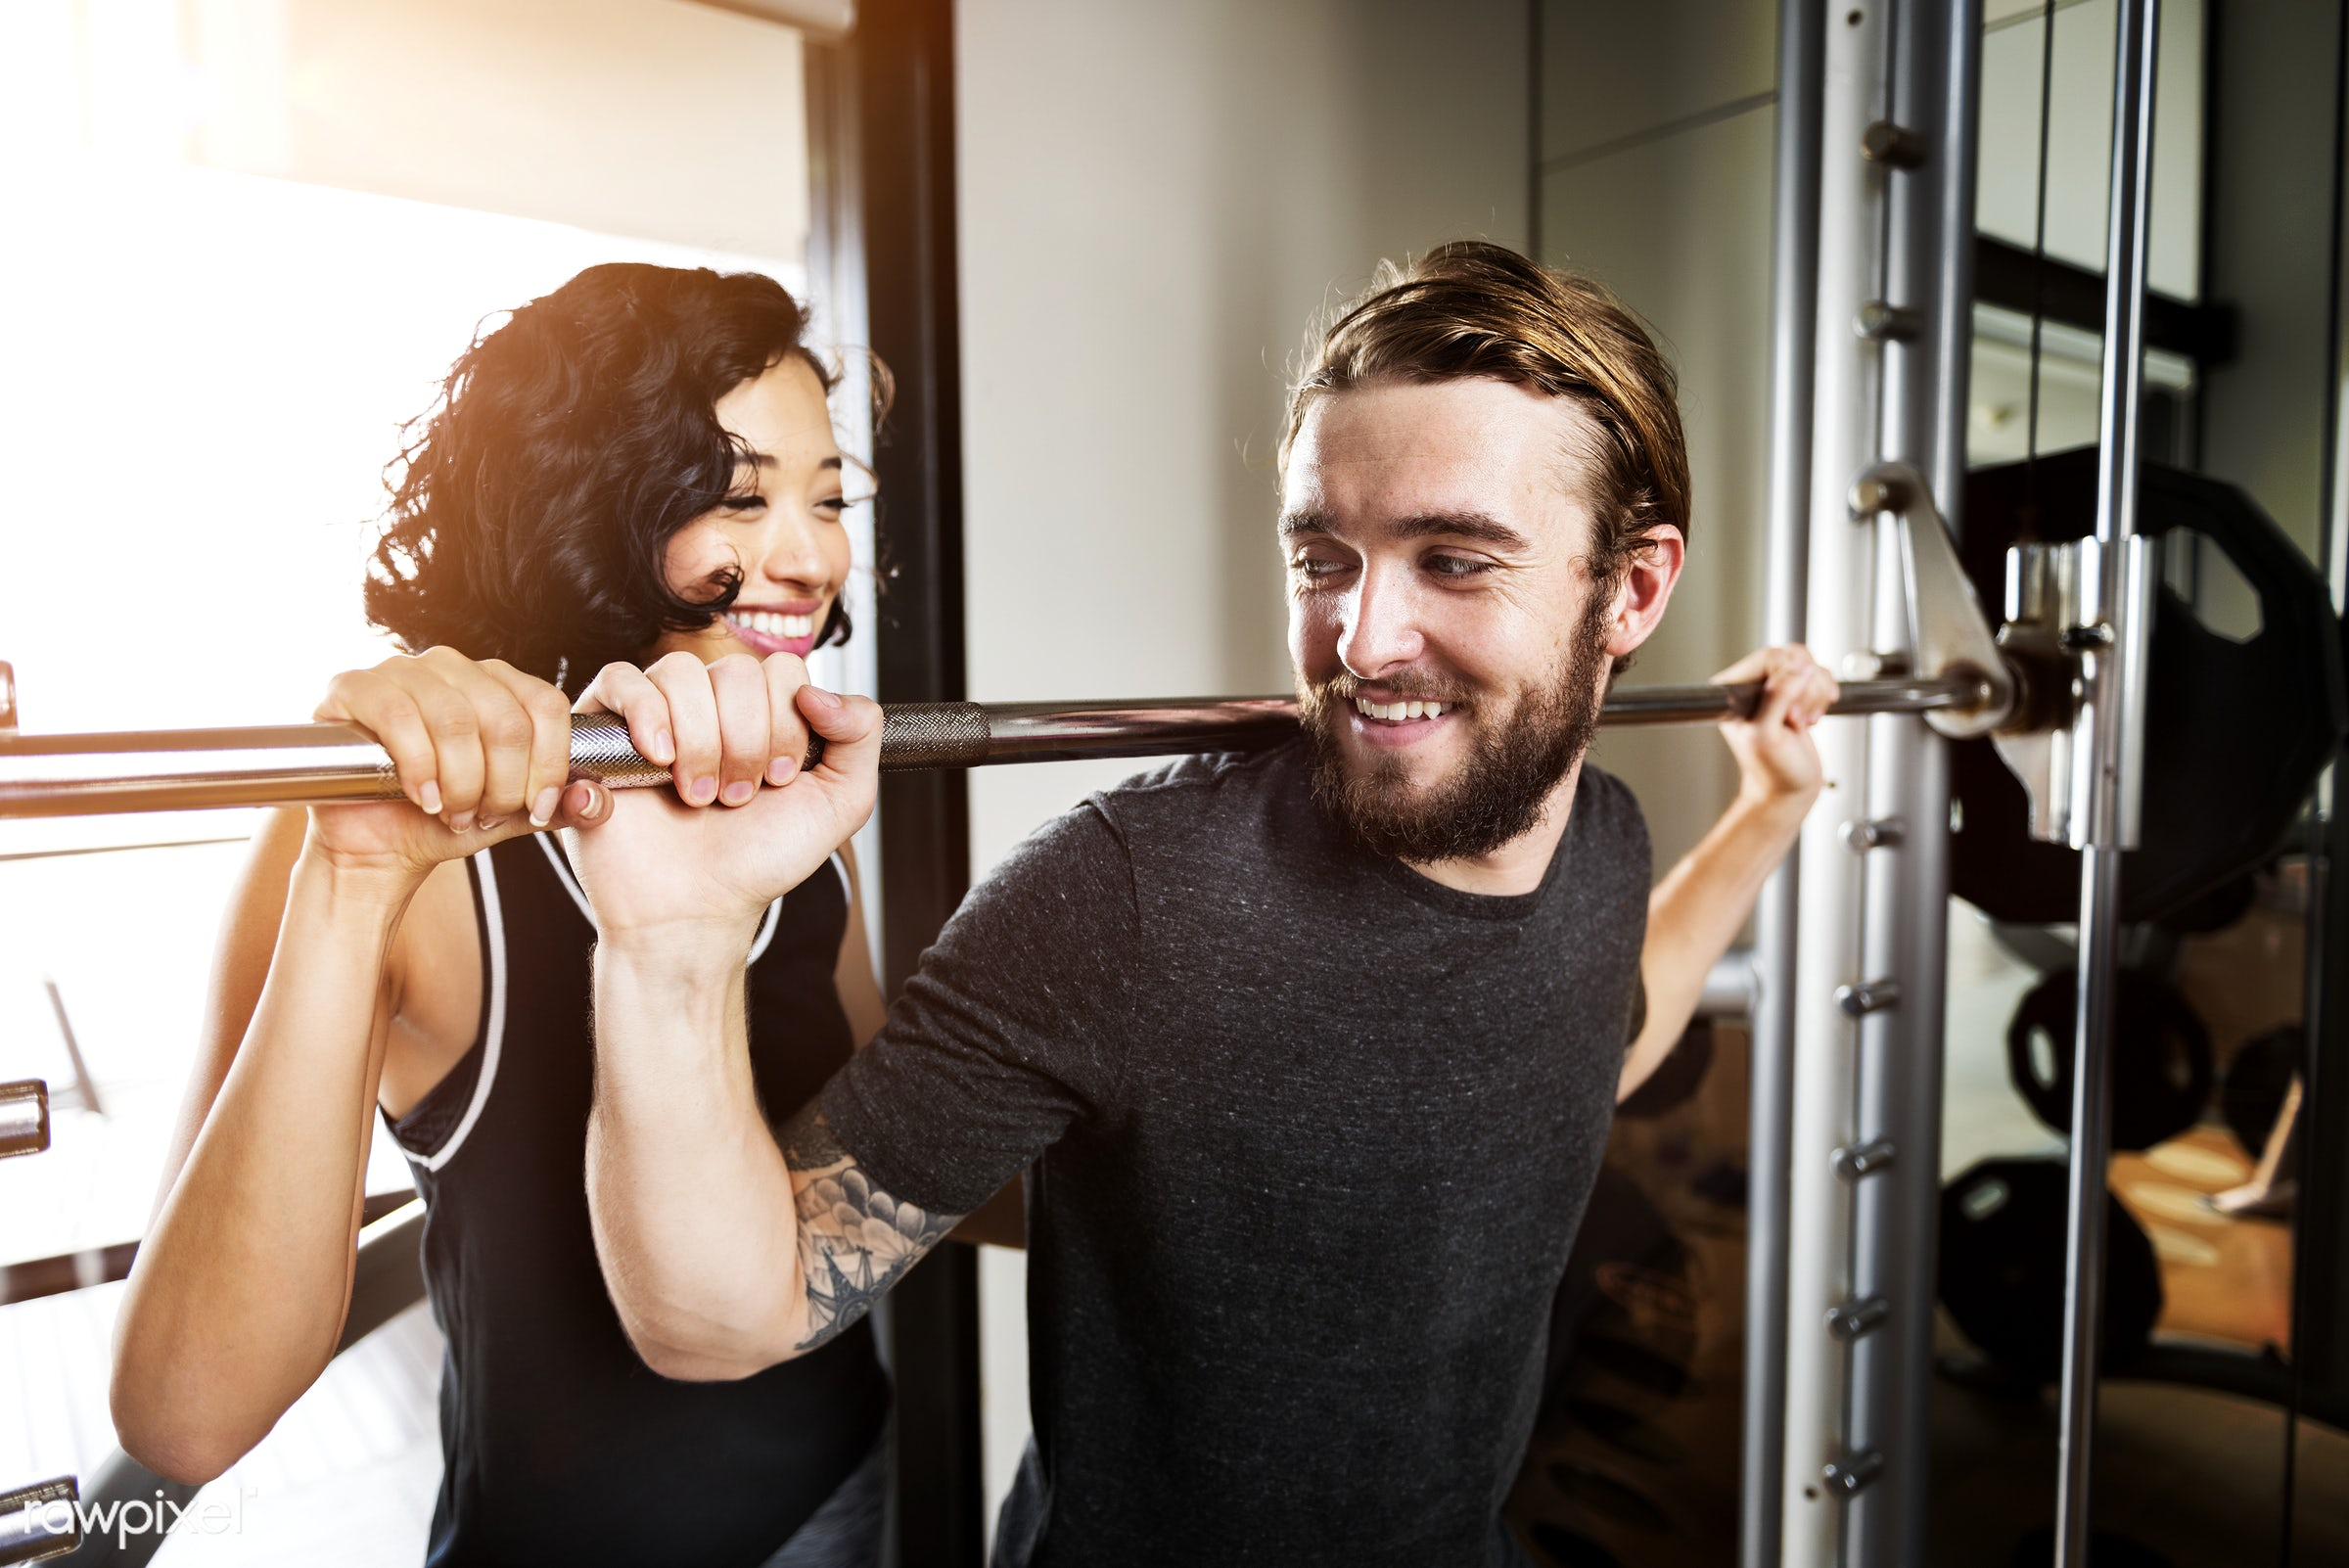 Couple working out together at the gym - gym, active, adult, asian, assistance, athlete, athletic, attractive, body,...